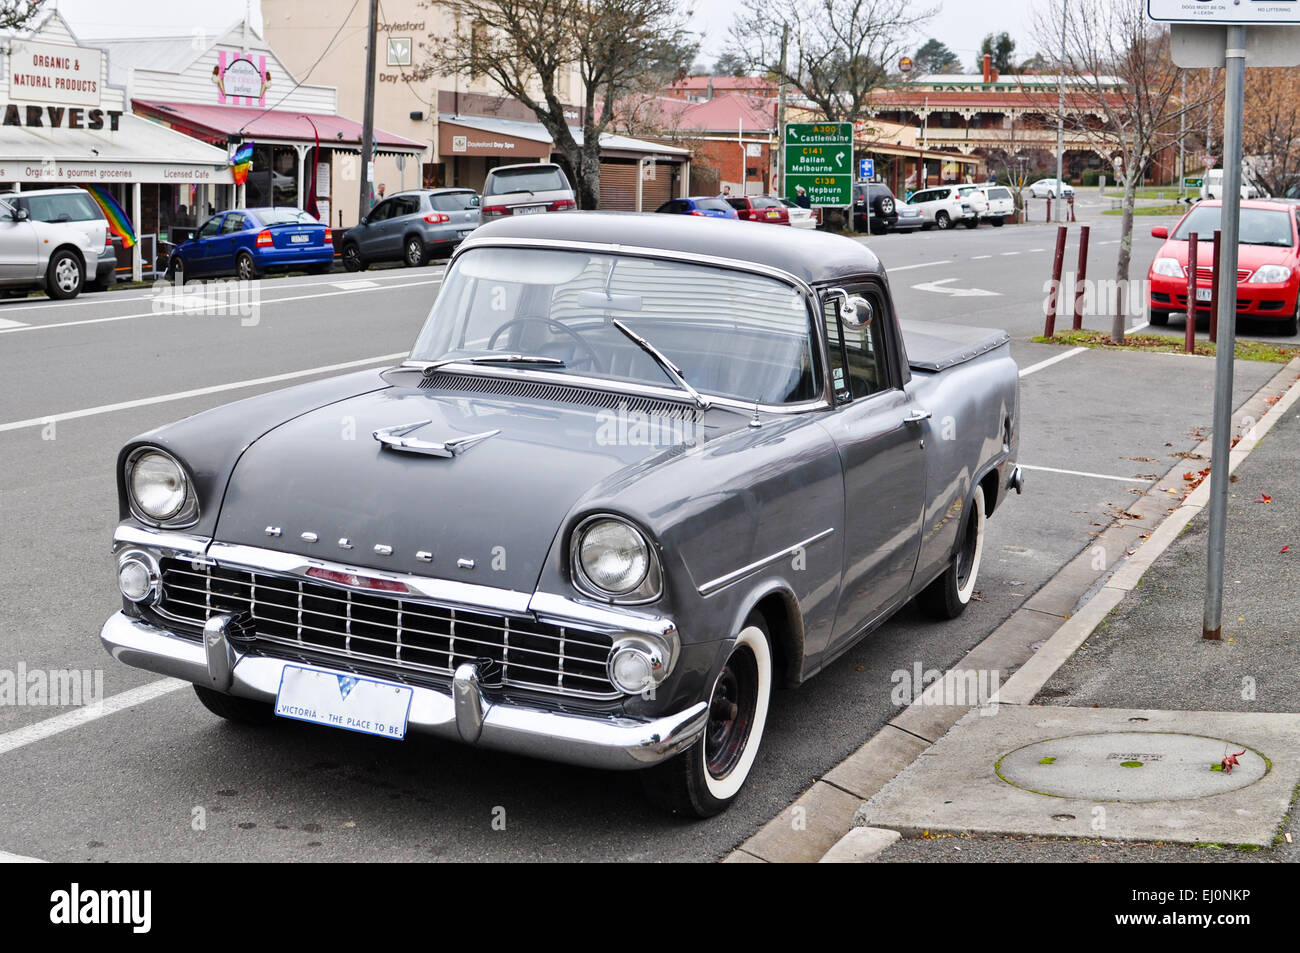 Vintage gray Holden automobile on the streets of Daylesford, a small town in rural Victoria in Australia. - Stock Image